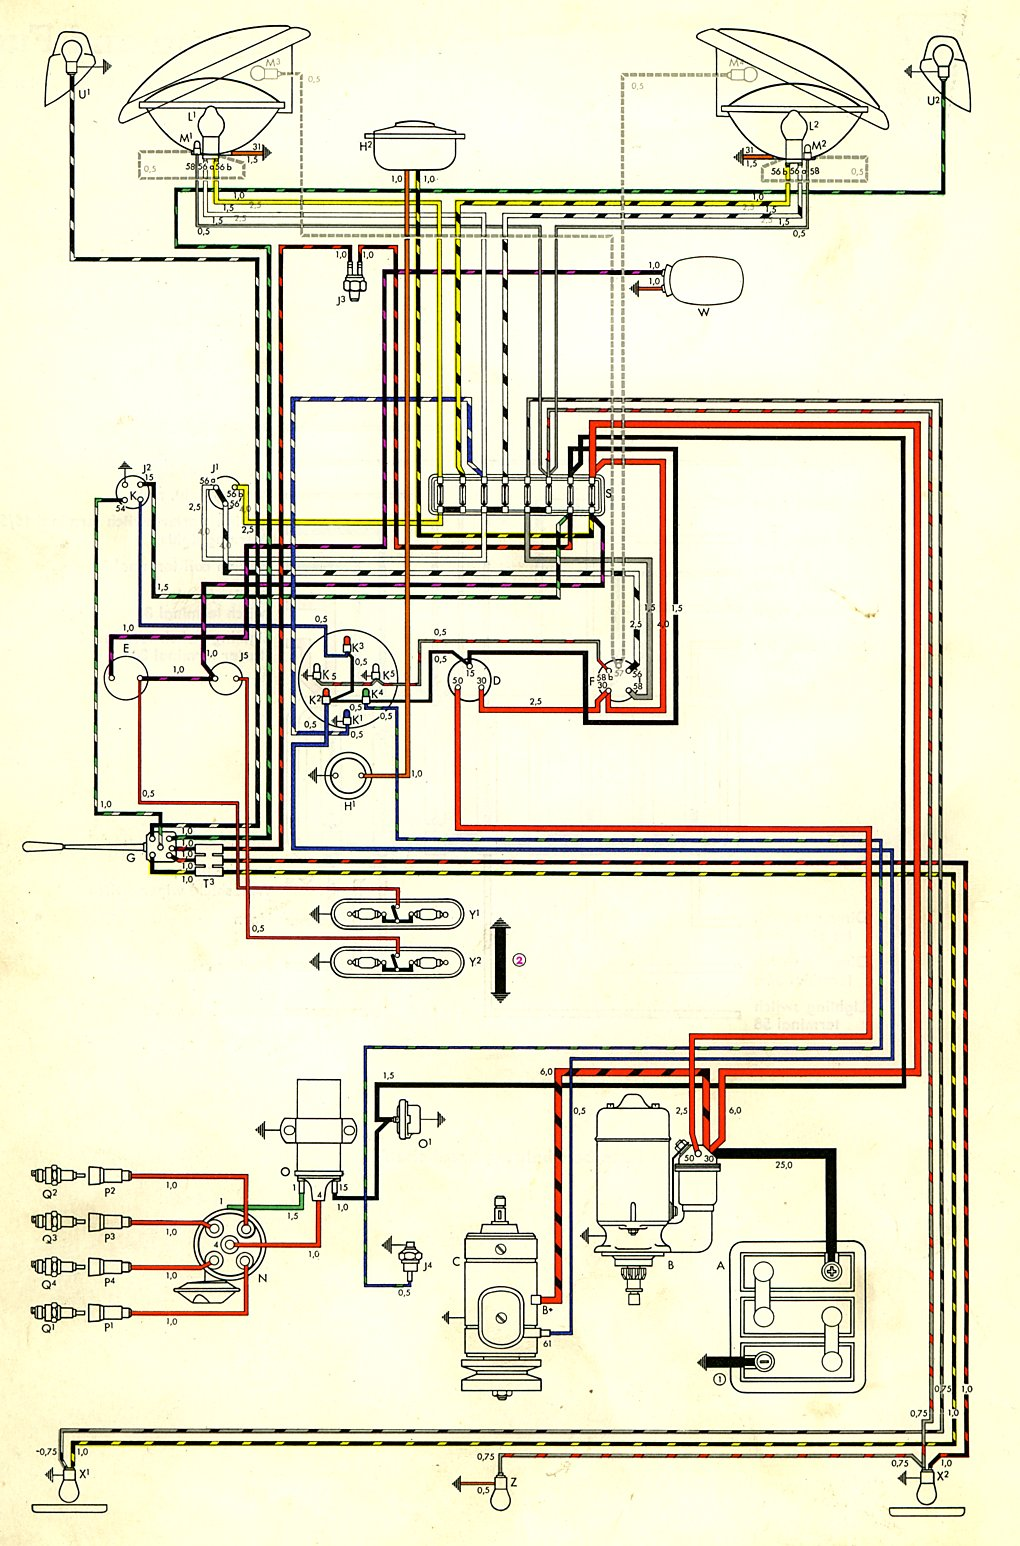 1971 chevy c20 wiring diagram wiring library 1969 chevy truck ignition wiring diagram 1971 chevy truck